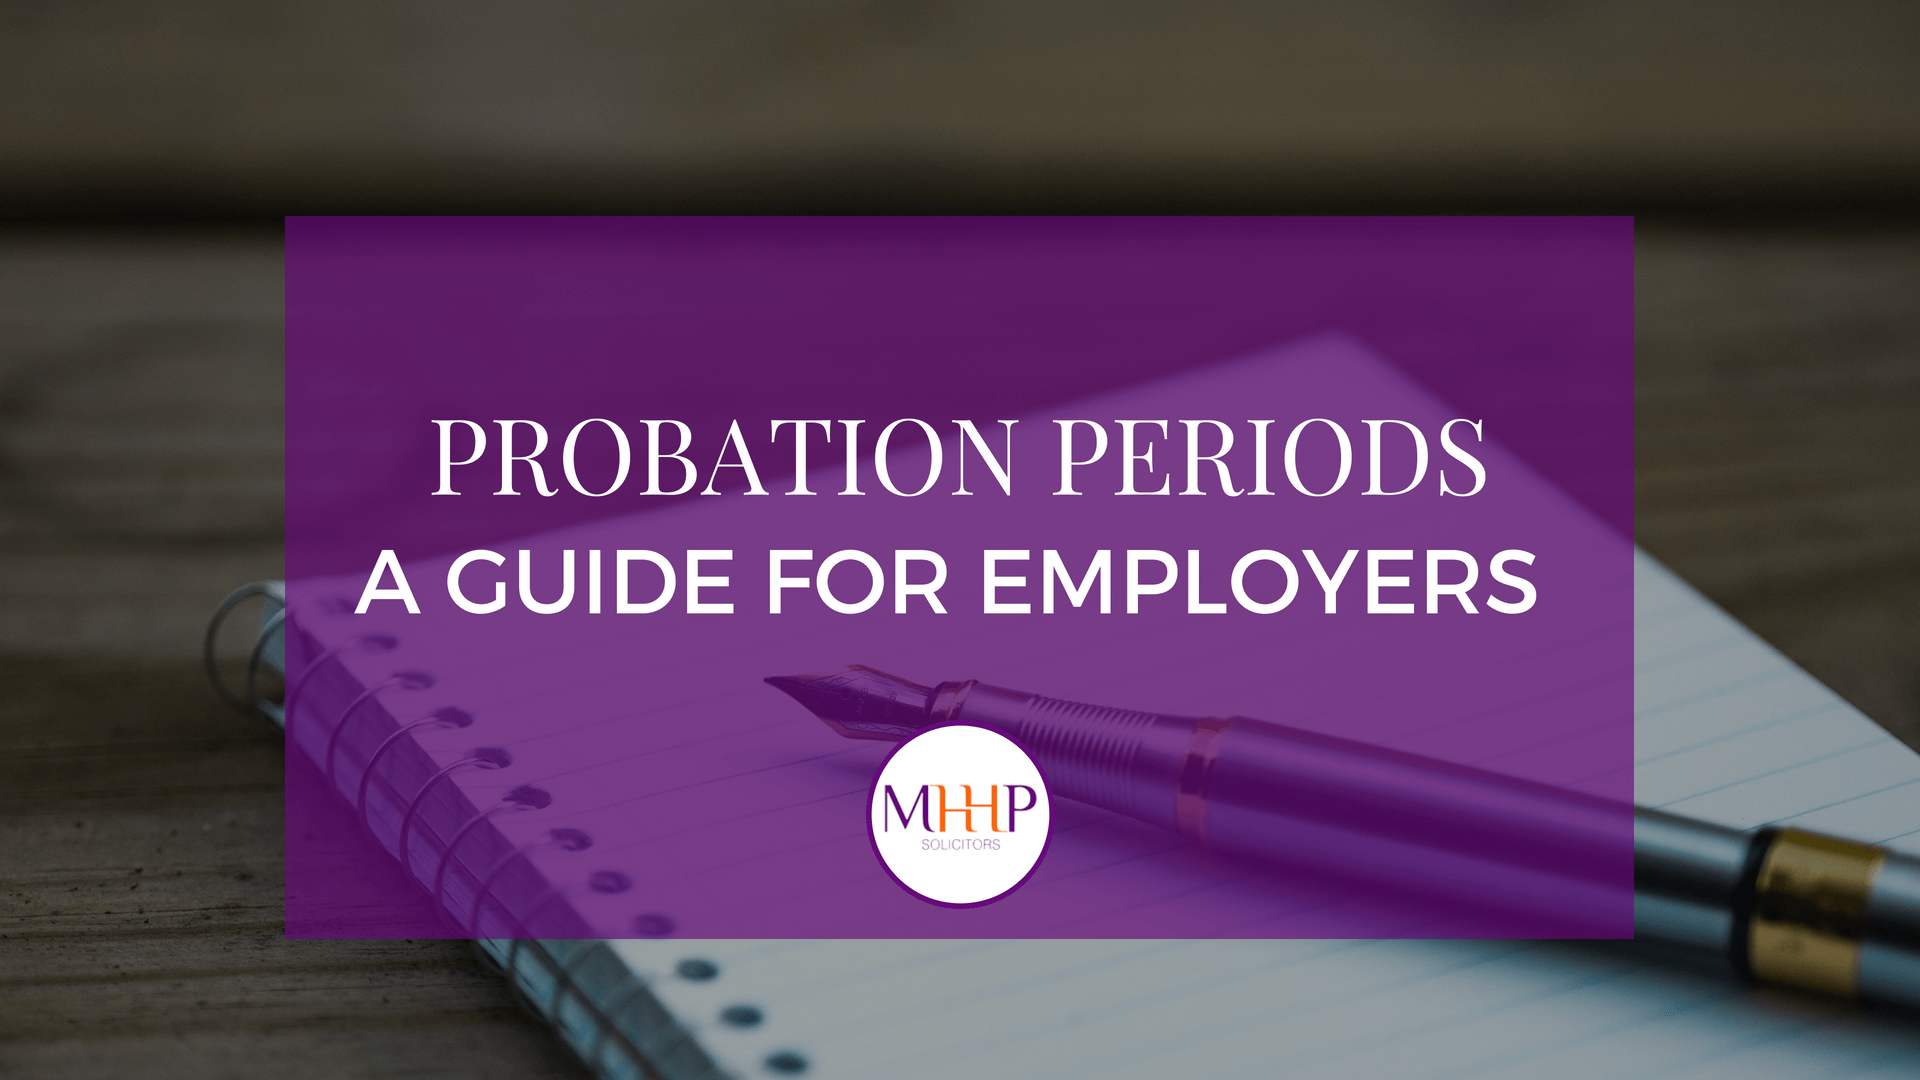 MHHP law - Probation periods